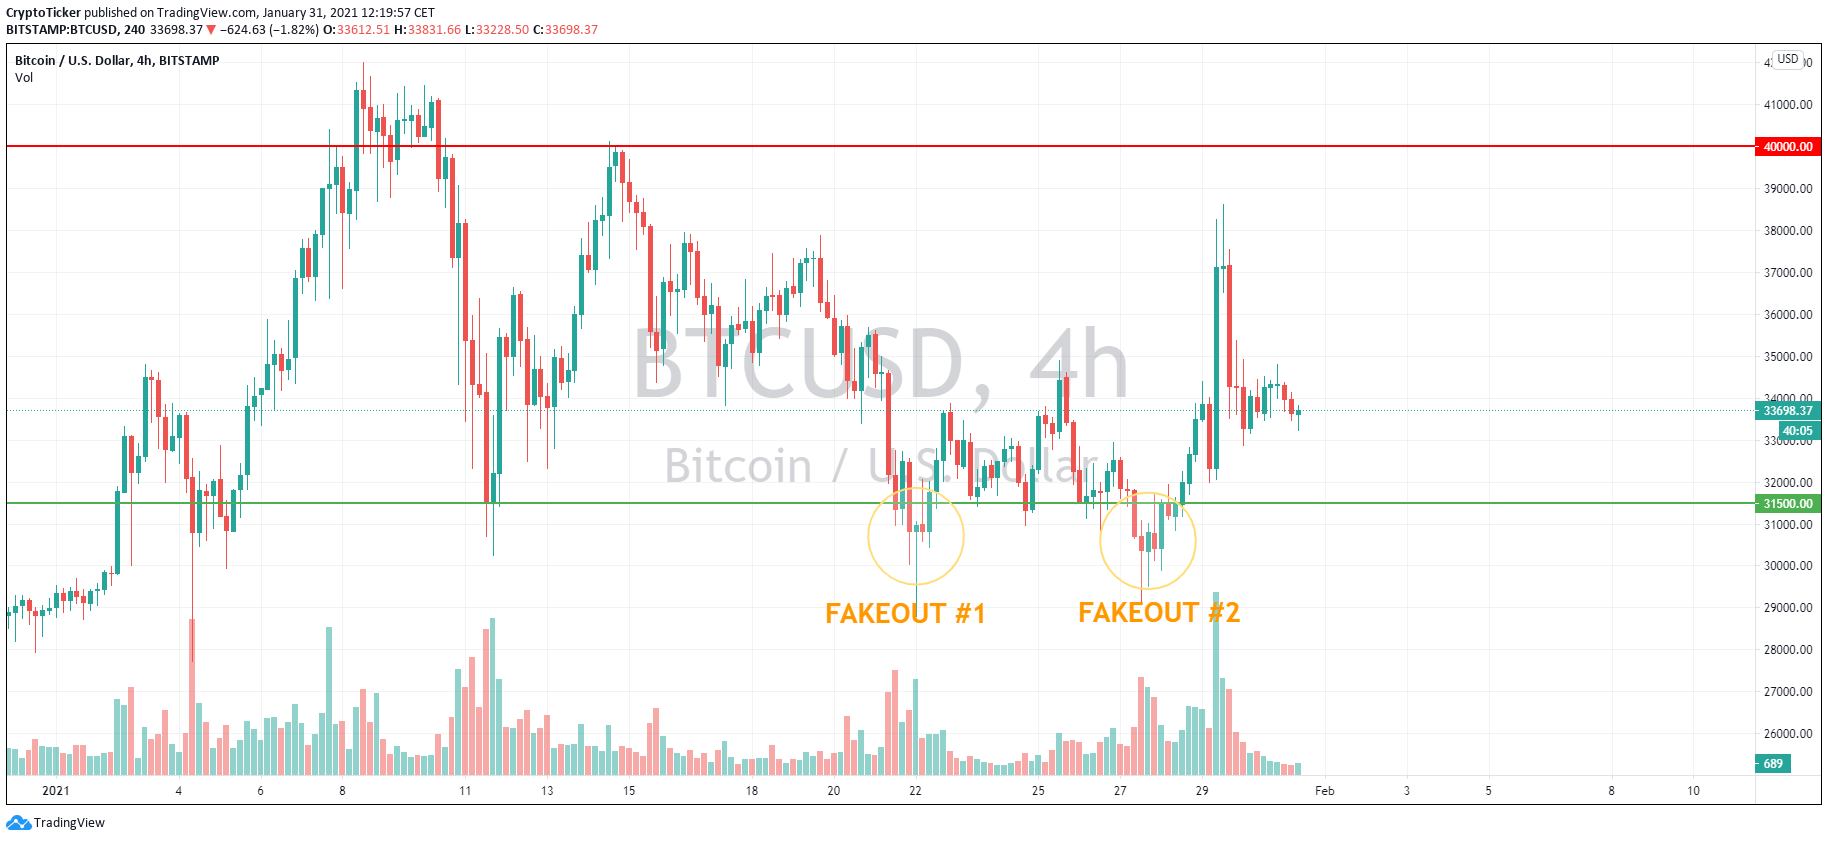 BTC/USD 4-hour chart showing the current BTC price consolidation